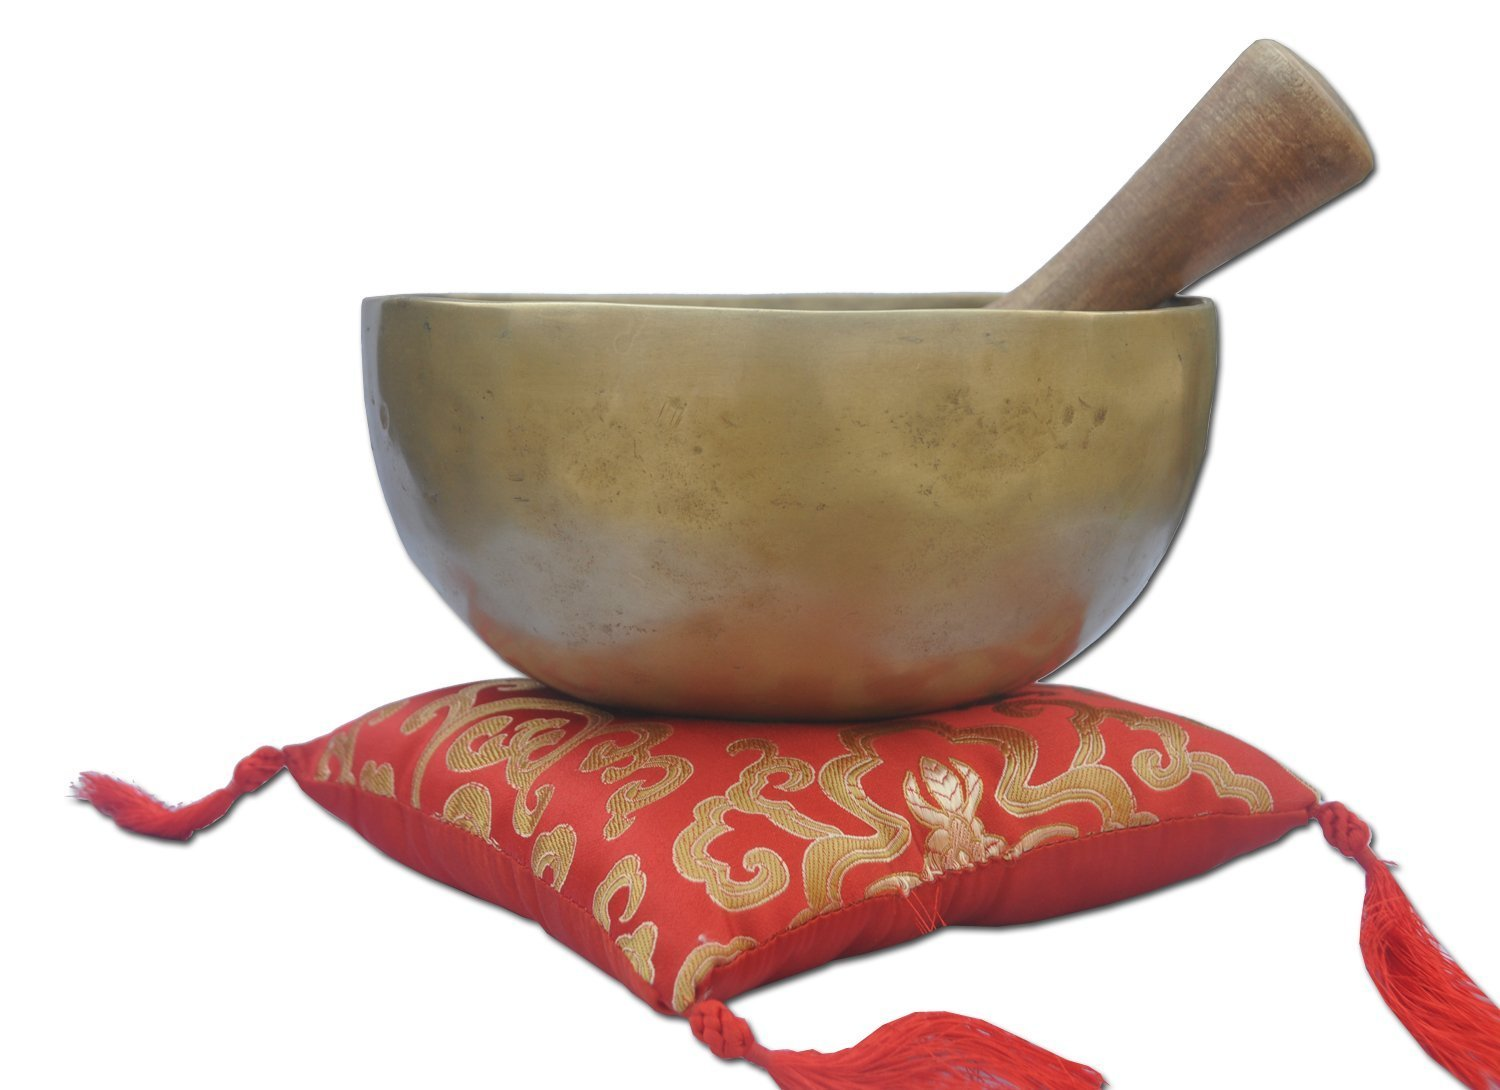 7 Chakra B-Crown old campana tibetana, con eccellente old Singing bowl-Ciotola canterina in metallo battuto a mano in Nepal, Buddhist ciotole